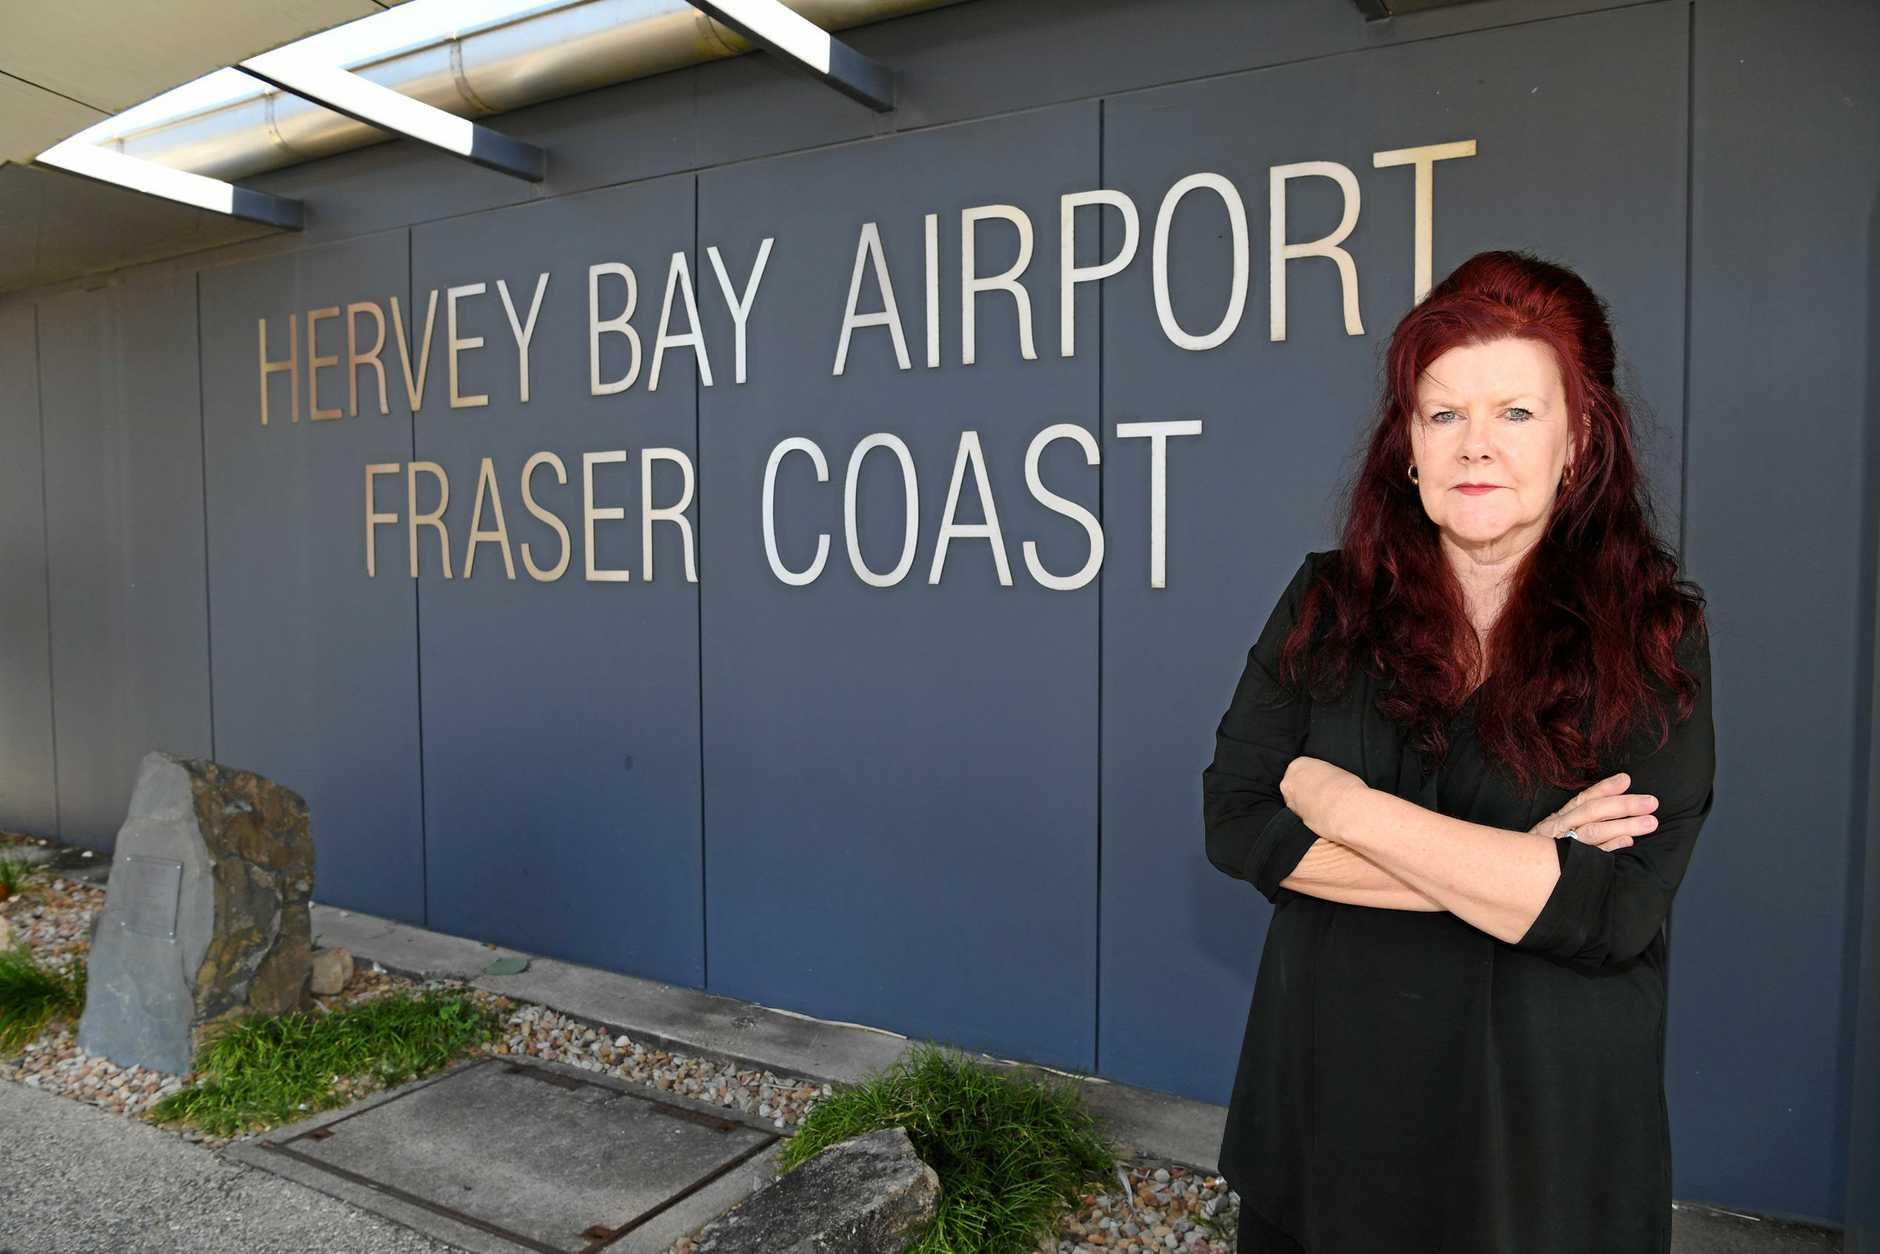 FLIGHT PRICE PROBLEMS: Hervey Bay Chamber of Commerce president Sandra Holebrook says high pricing at the Hervey Bay Airport can affect the viability of businesses. It comes after Qantas invested $10 million into regional and rural airports to improve flight service costs across Queensland, but not in Hervey Bay.